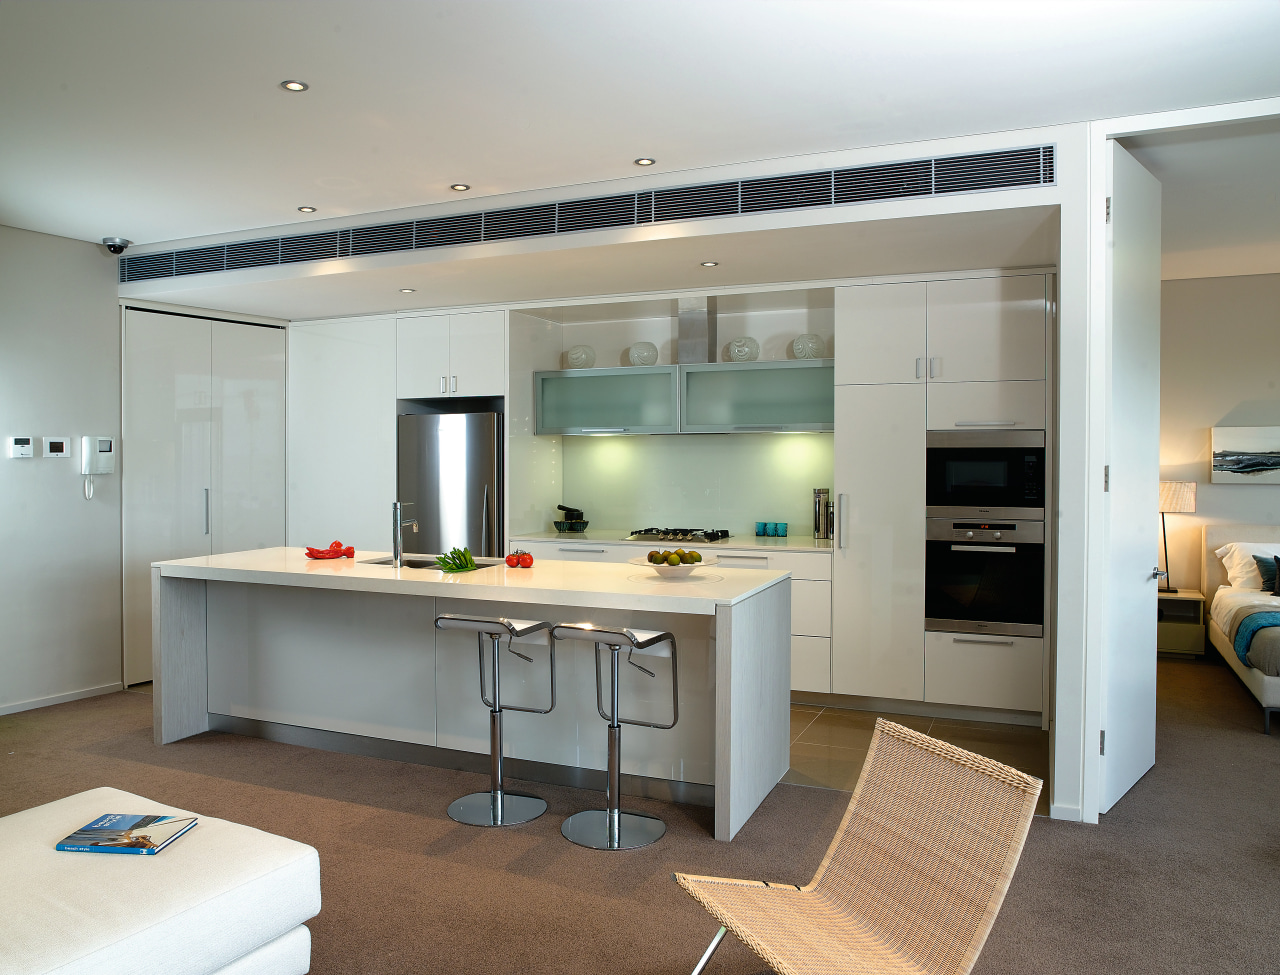 A view of a kitchen with some Miele cabinetry, countertop, cuisine classique, interior design, kitchen, gray